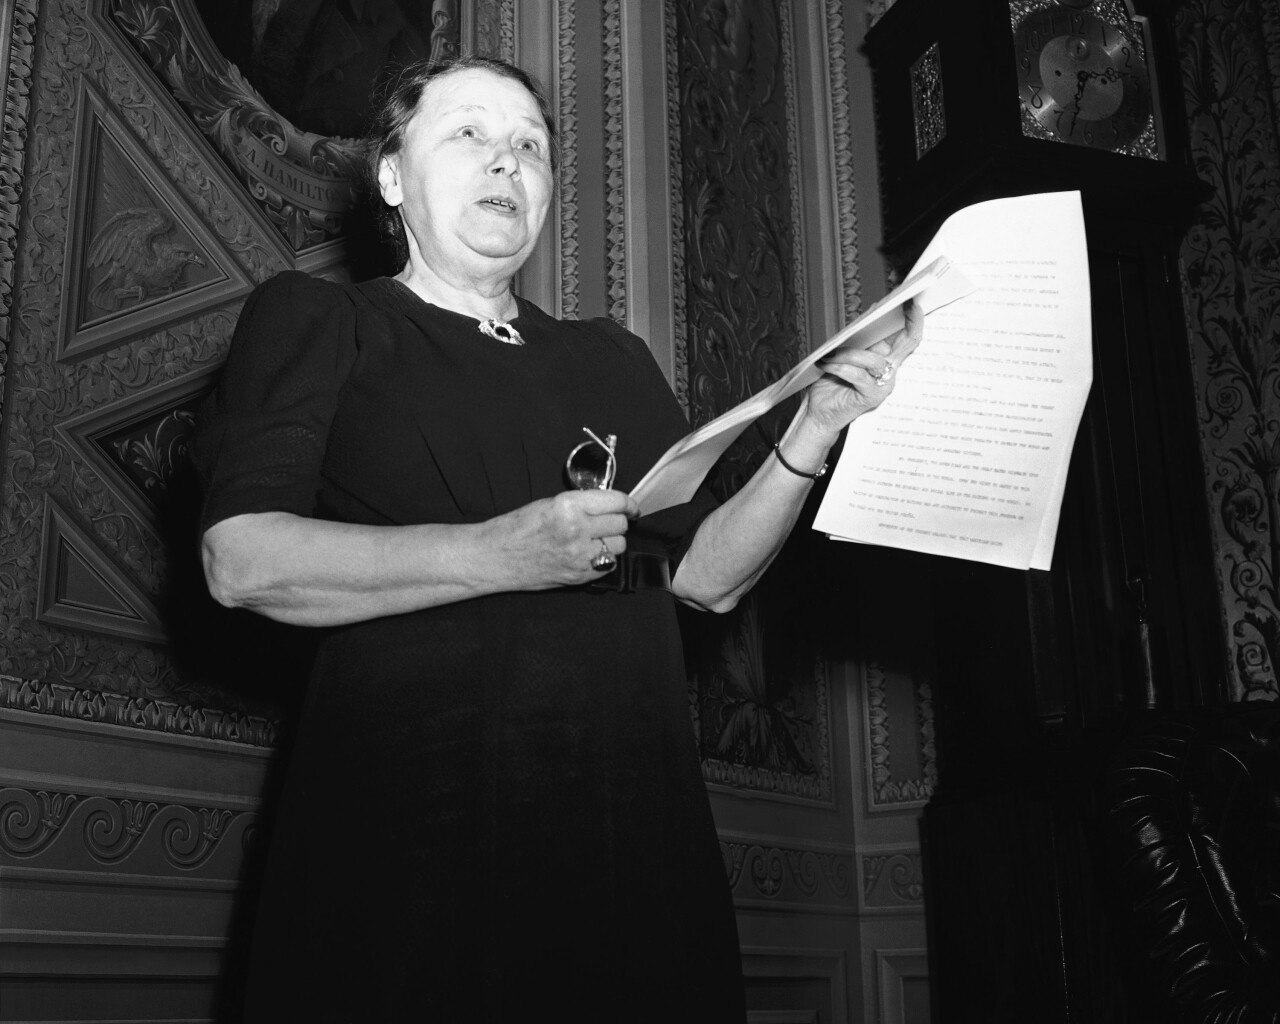 """Preparing to take the floor for one of her rare speeches, Hattie W. Caraway (D-Ark), only woman member of the senate on Nov. 5, 1941, leafed through her address advocating revision of the U.S. Neutrality act and arming of U.S. Merchant ships. Senator Caraway, mother of two boys in uniform, declared the Neutrality Law was a """"super appeasement job."""" (AP Photo)"""